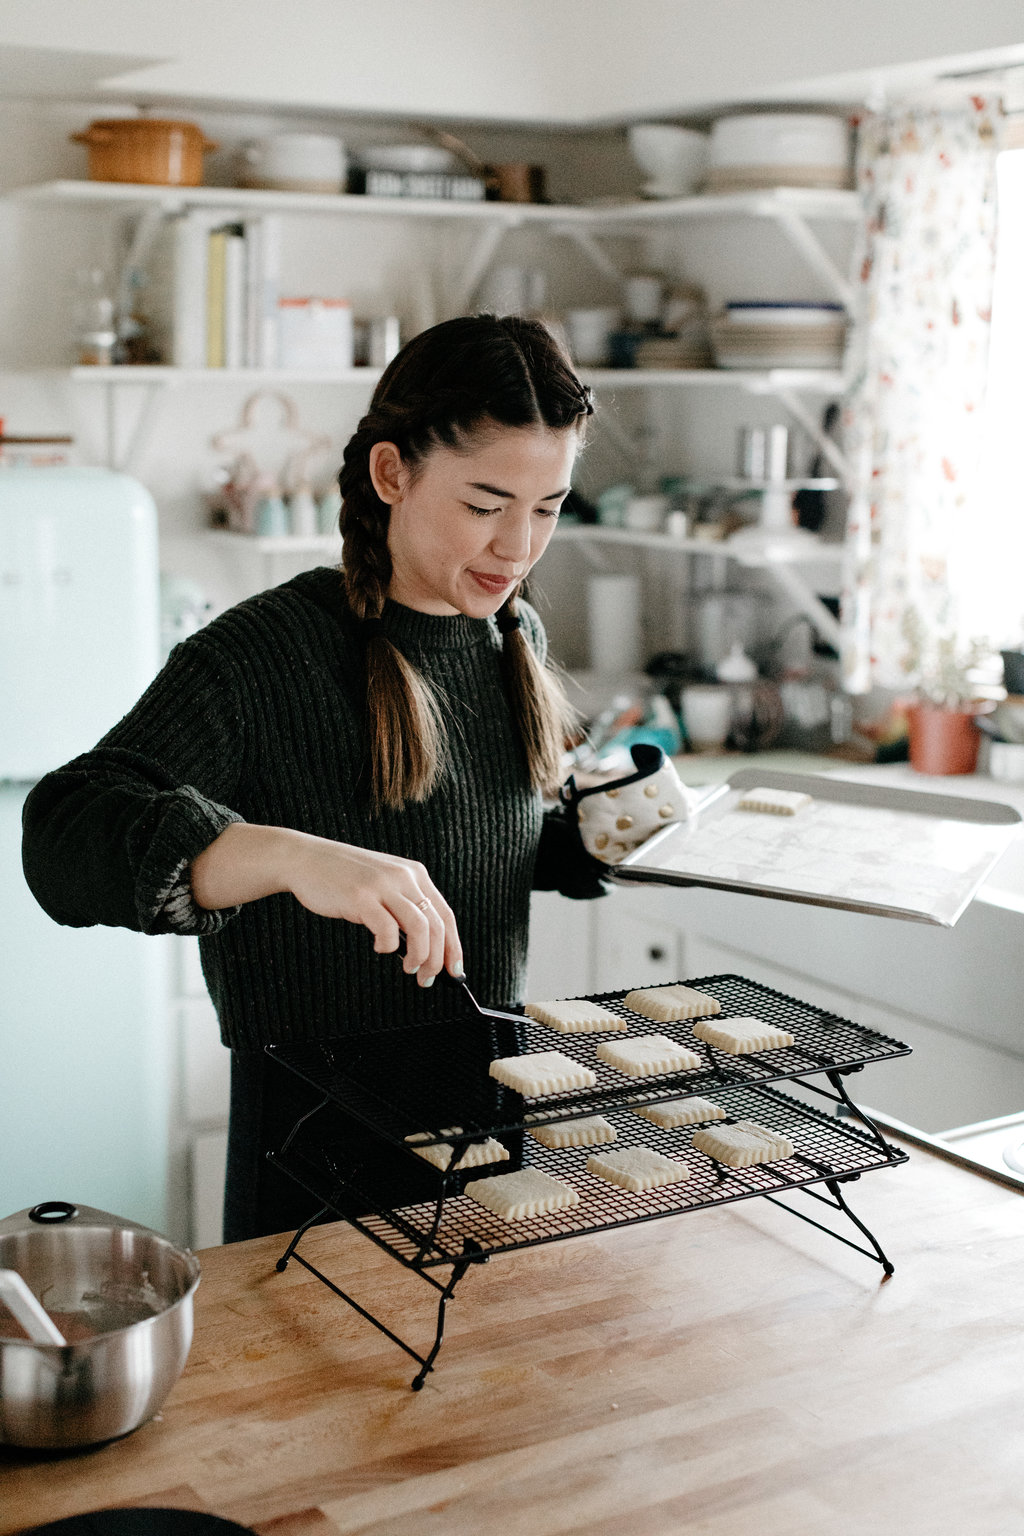 molly-yeh-pampered-chef-cookies-59.jpg